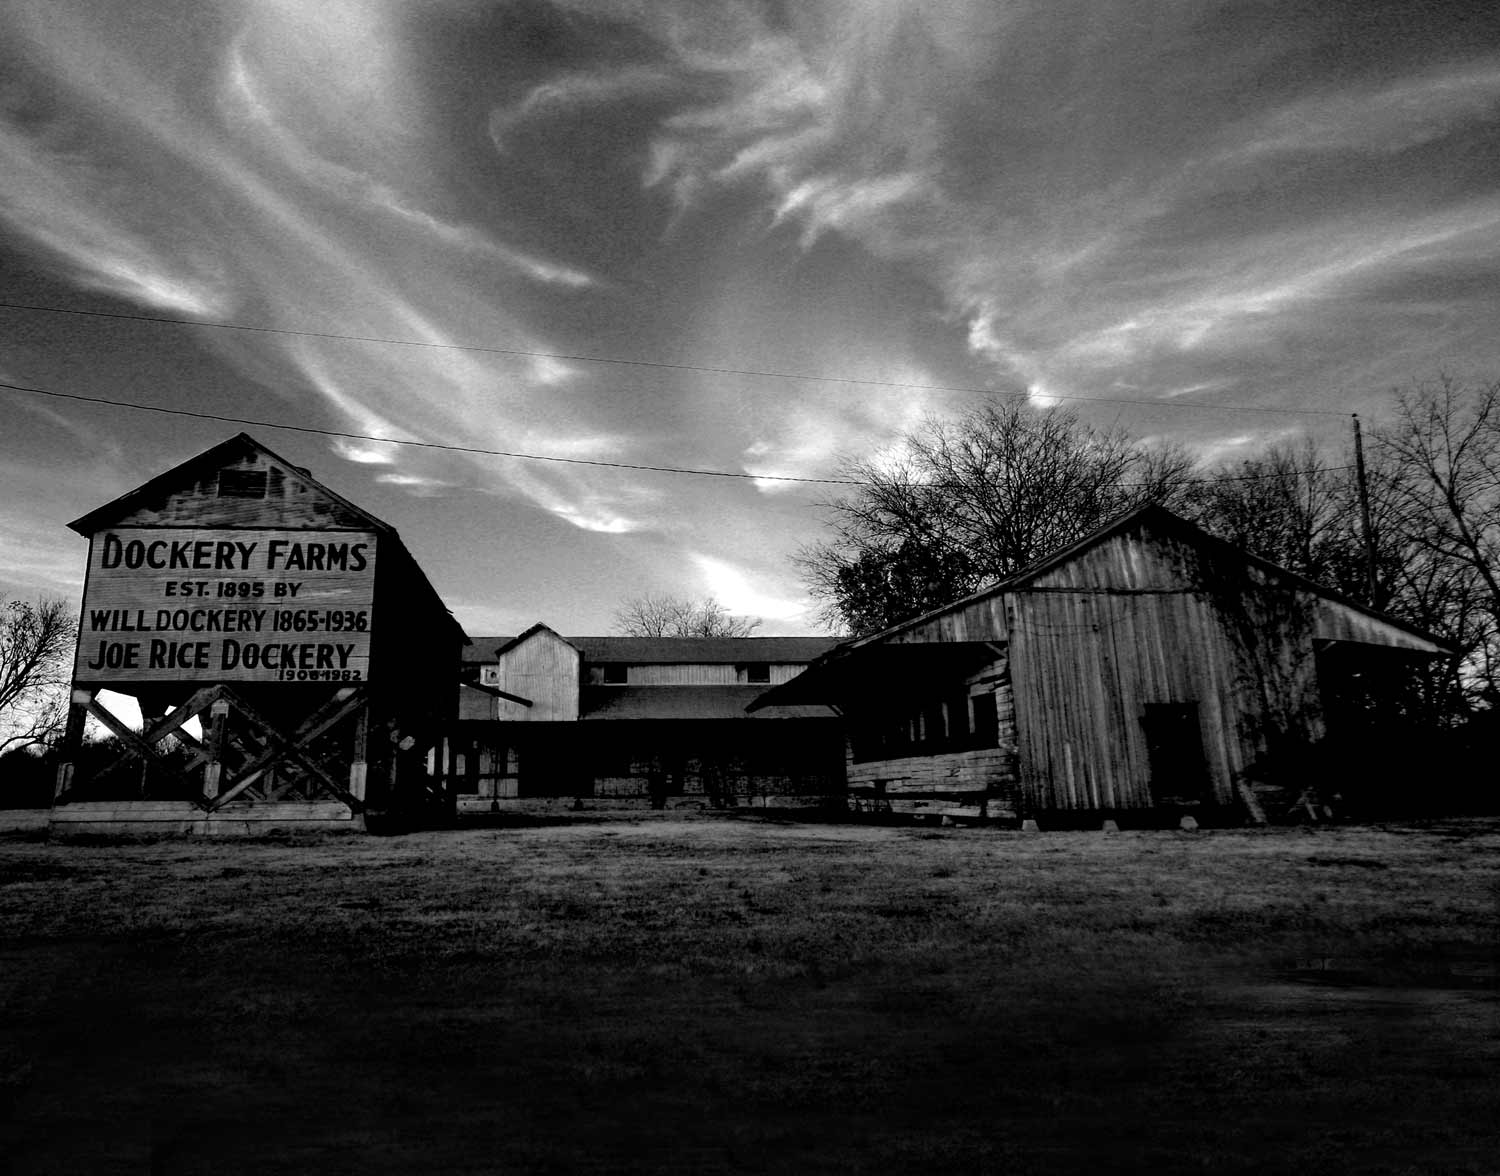 DOCKERY FARM;  Stovell, MS.